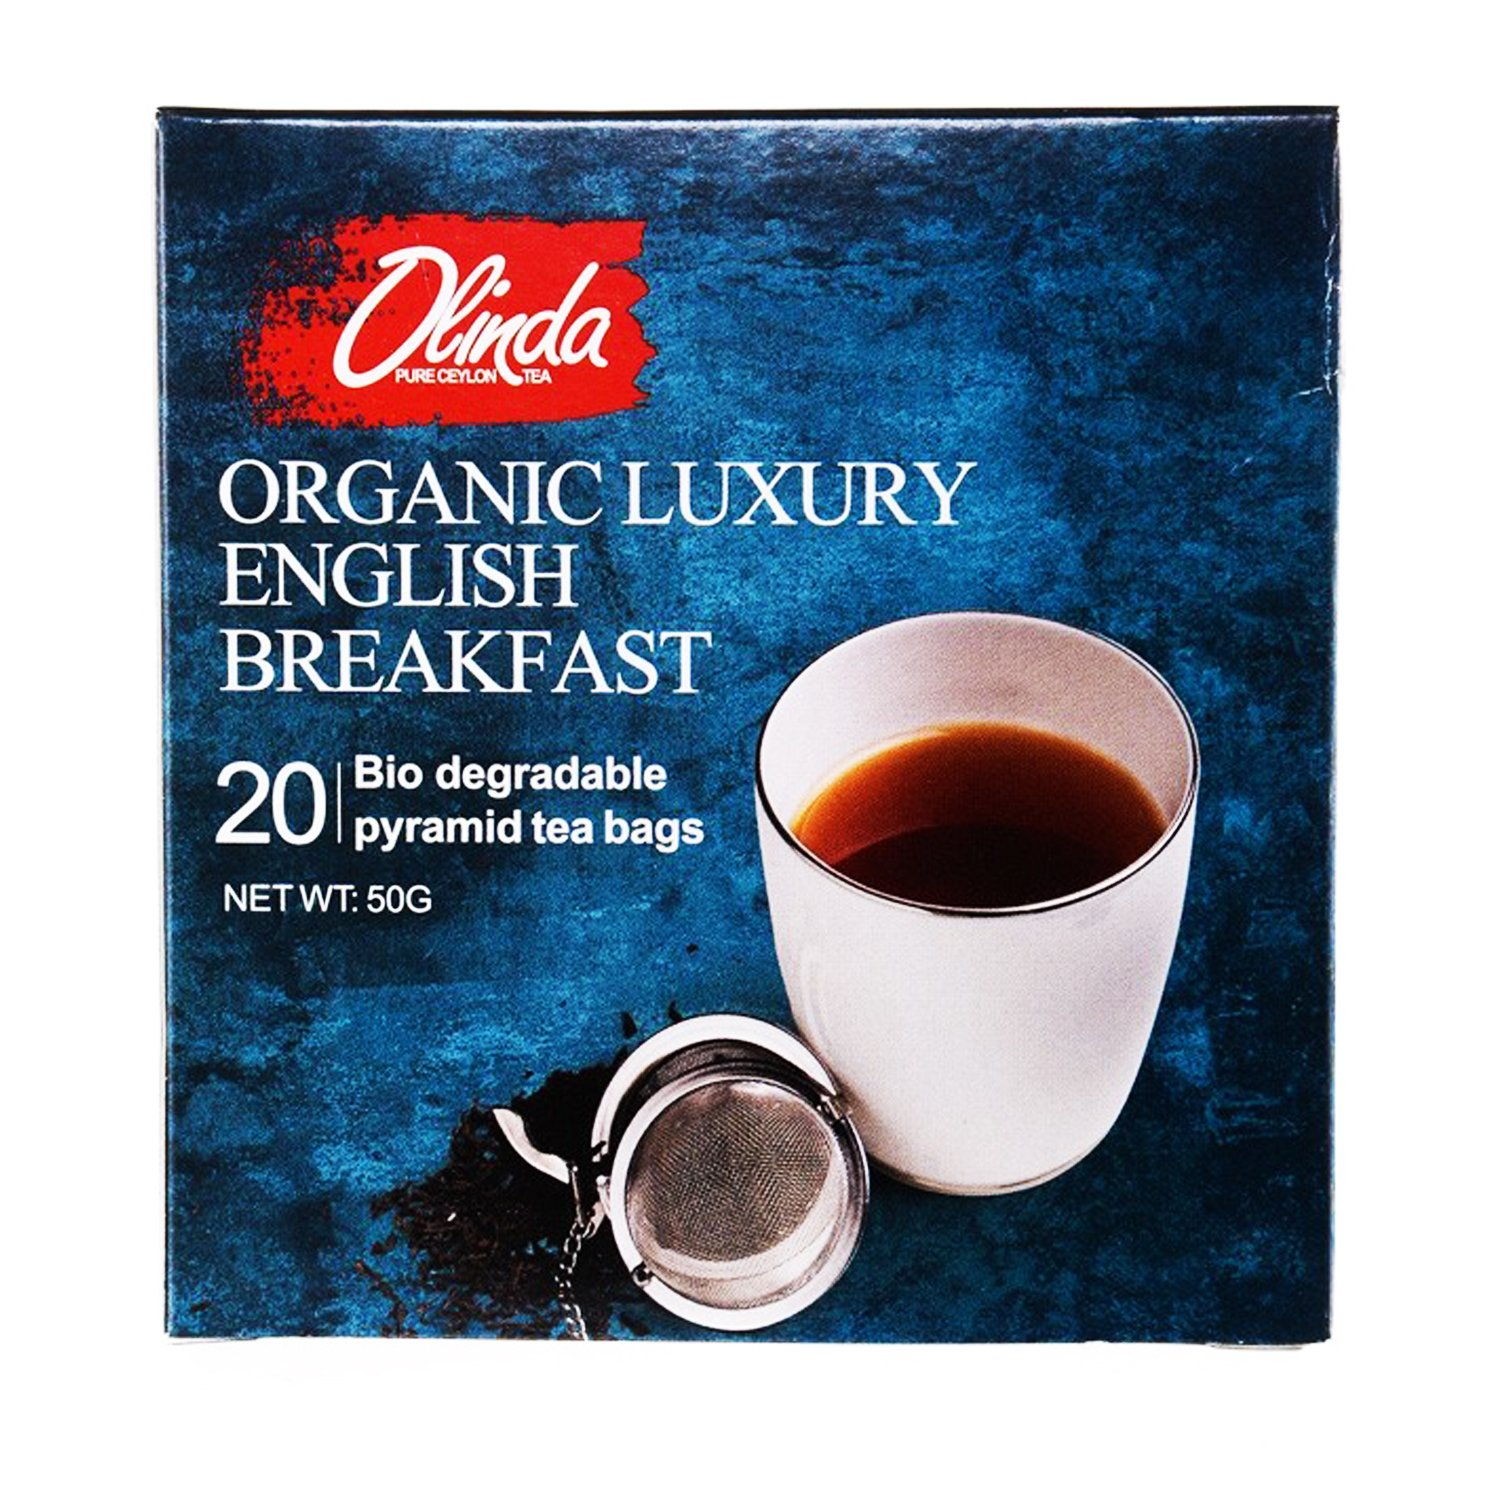 Olinda Organic Luxury English Breakfast Tea 18 Boxes (1 Box Contains 20 Tea Bags) by Olinda (Image #1)